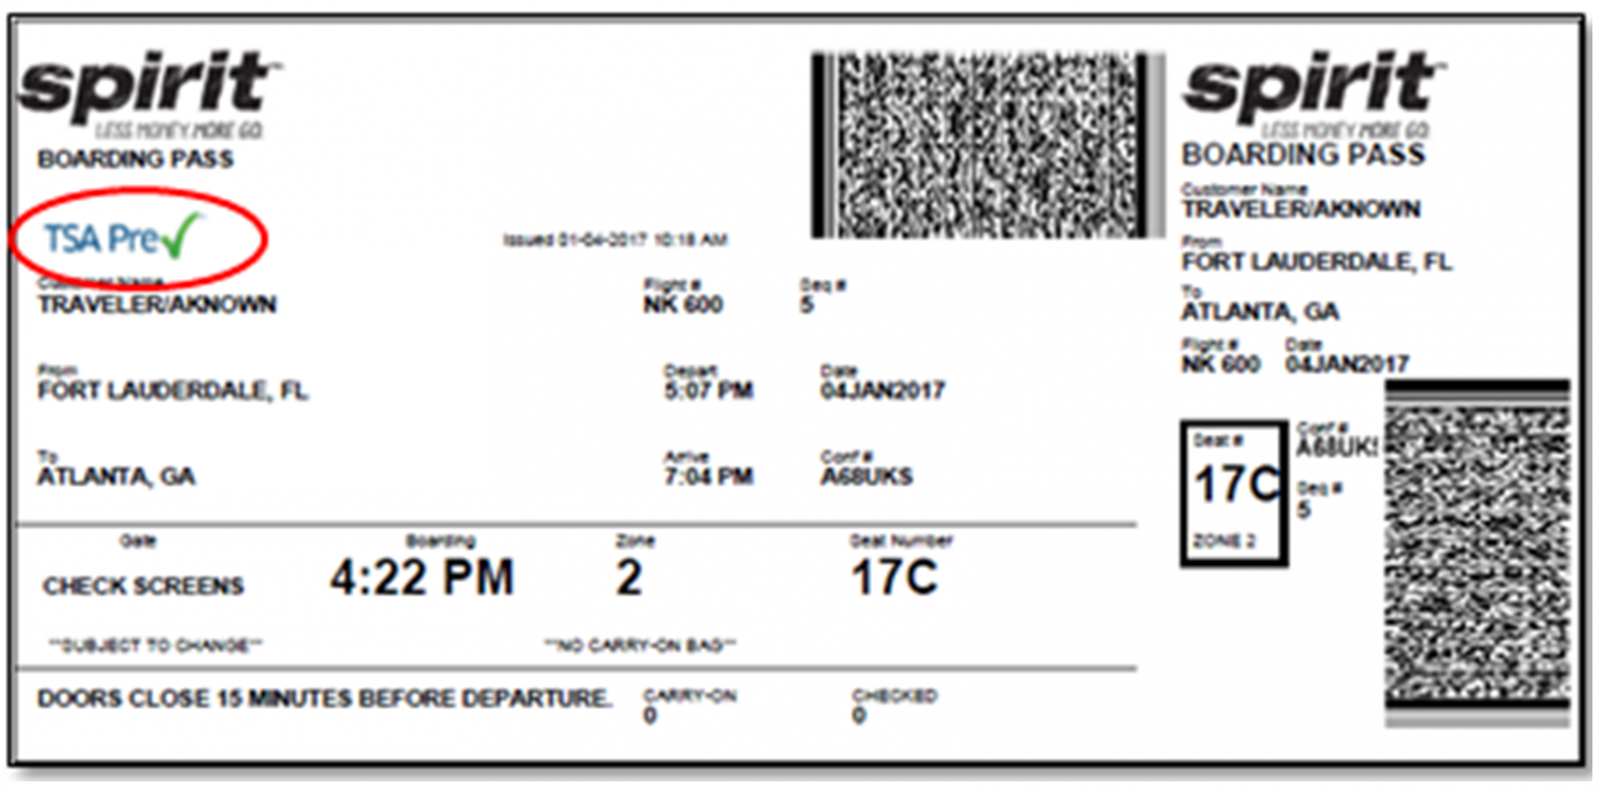 Image: TSA Precheck indicated on boarding pass